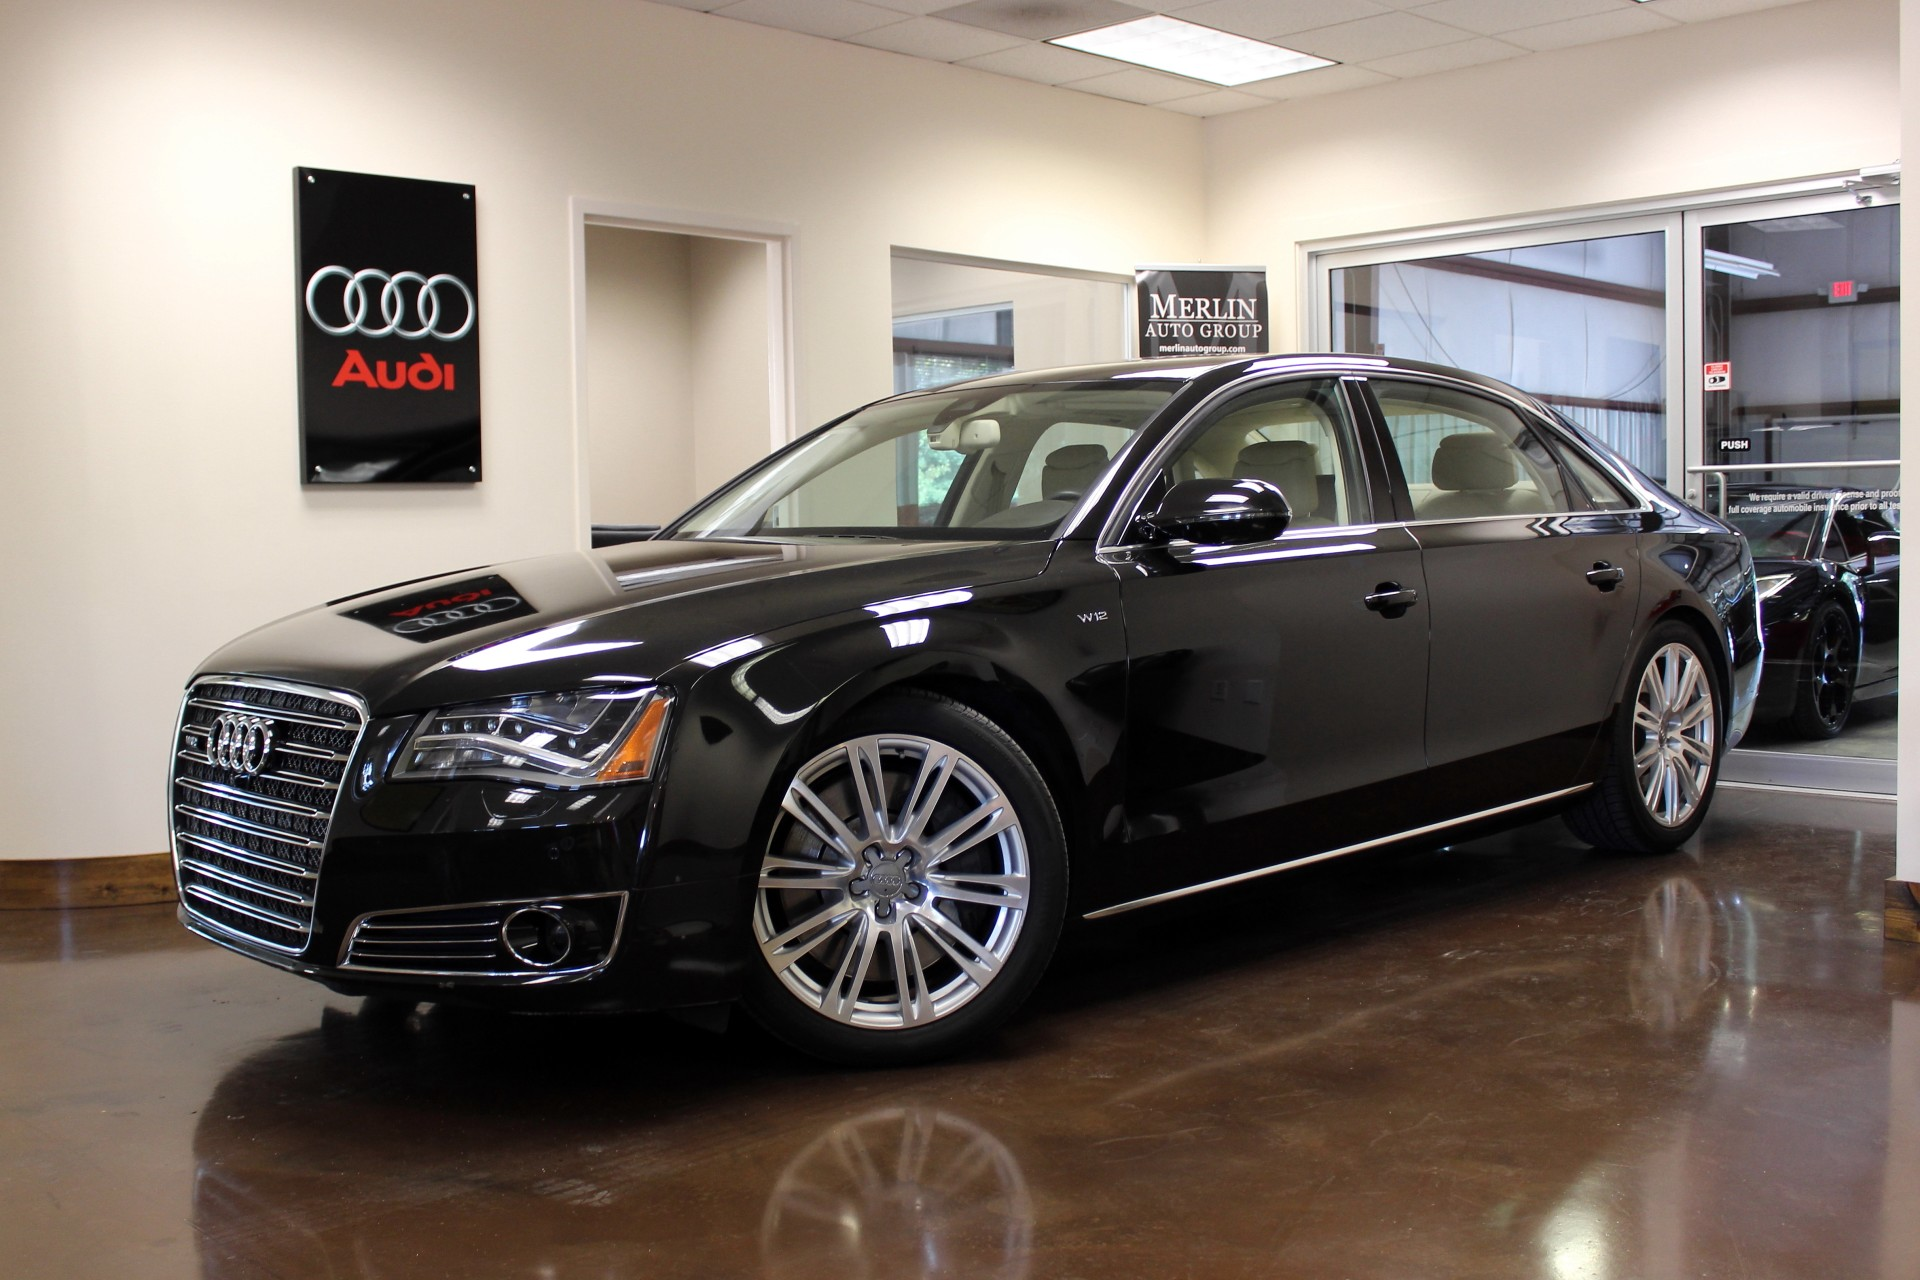 used 2013 audi a8 stock p2887 ultra luxury car from. Black Bedroom Furniture Sets. Home Design Ideas